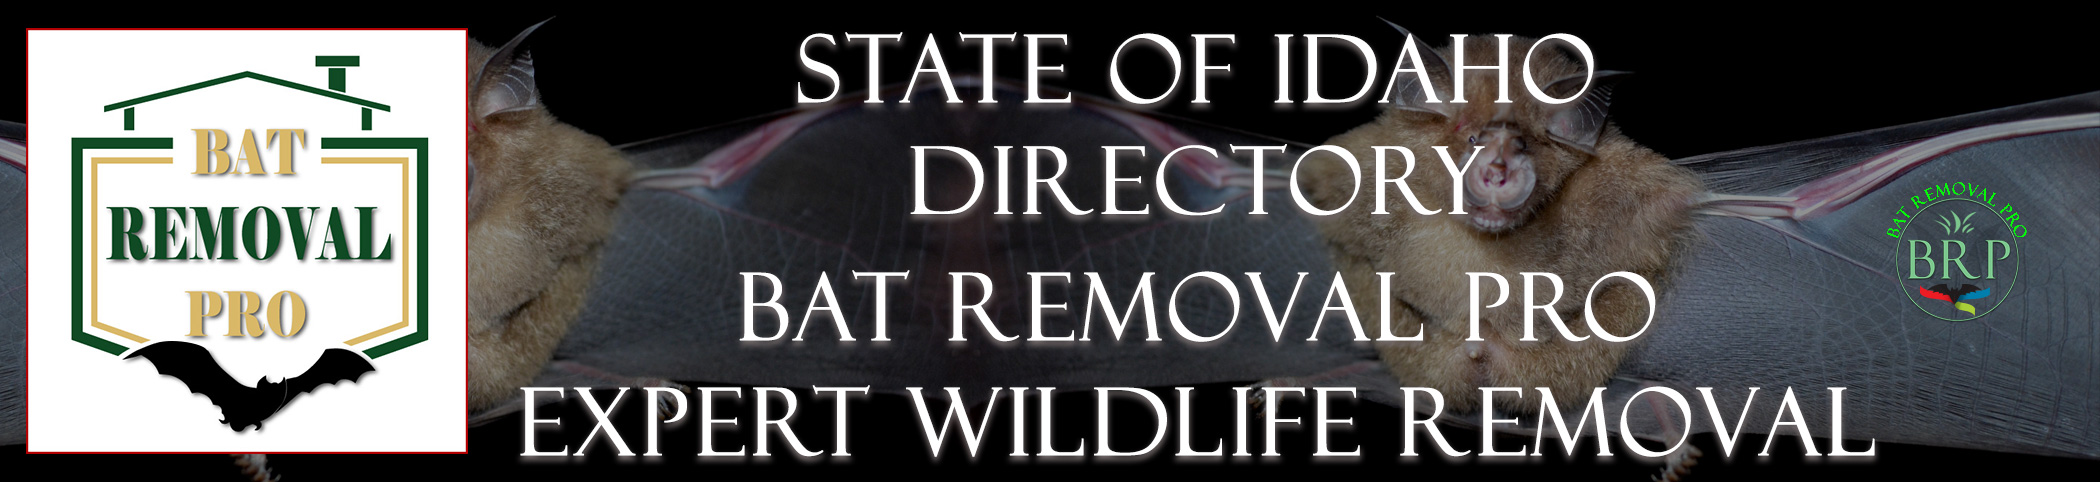 idaho-bat-removal-at-bat-removal-pro-header-image